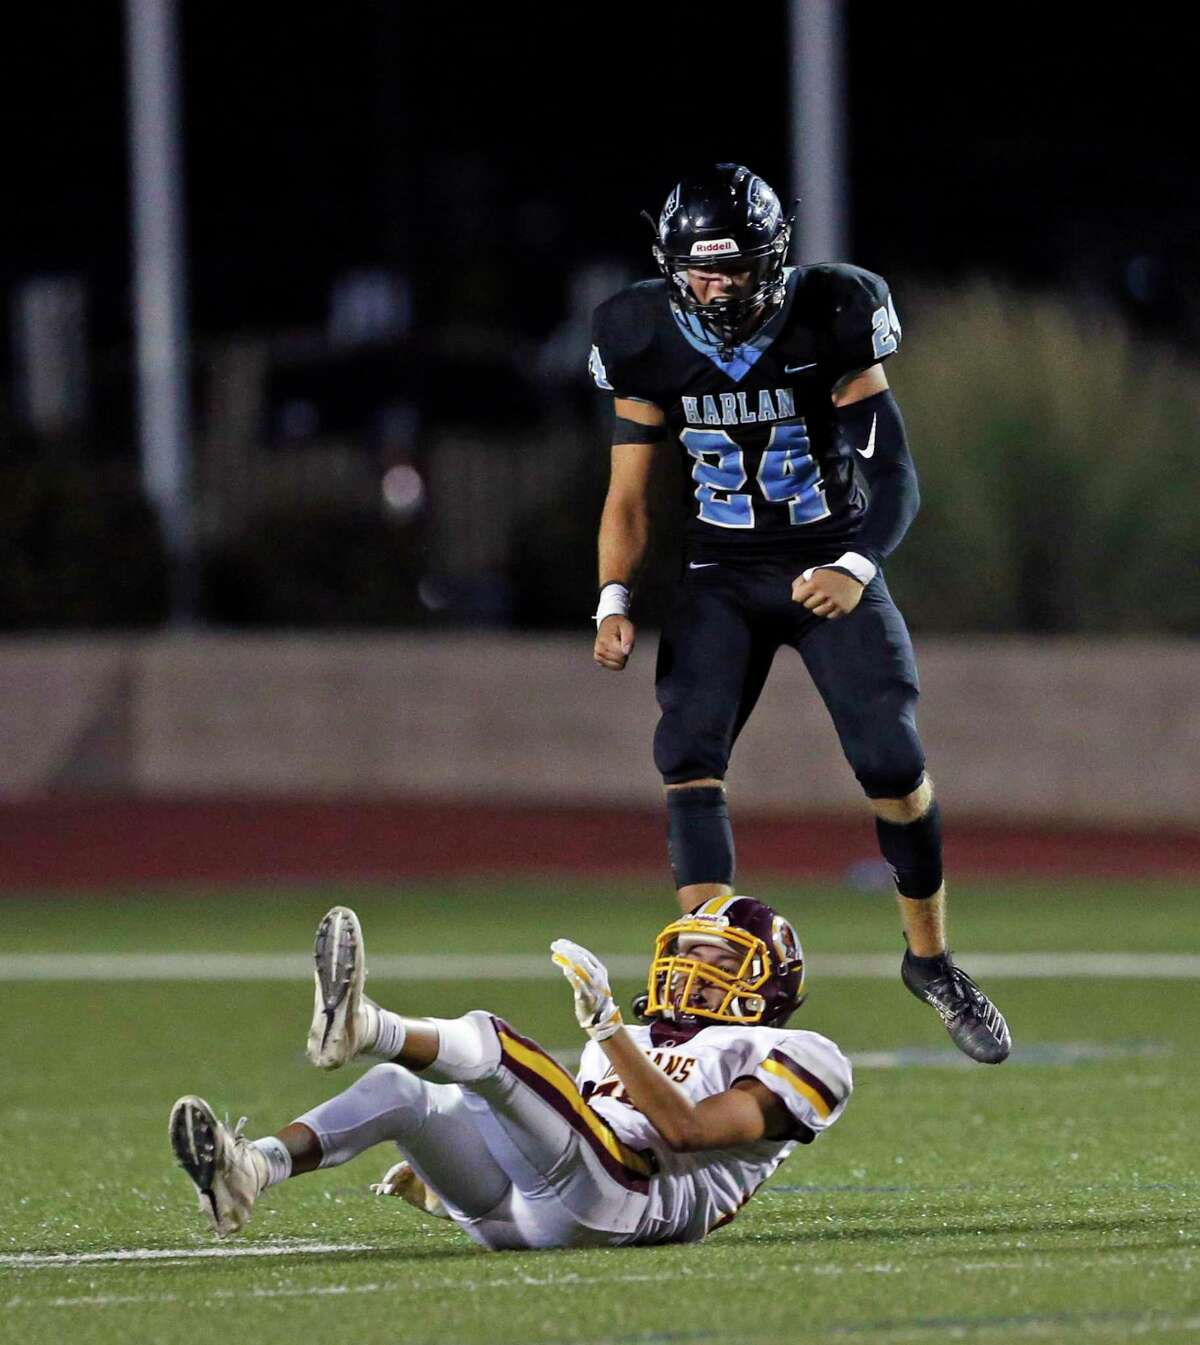 Harlan Zane Svoboda celebrates after knocking down a pass intended to Harlandale Gabriel Mendoza in a District 14-5A-I between Harlandale and Harlan on Friday, October 4, 2019 at Farris Stadium. Harlan won 63-36.